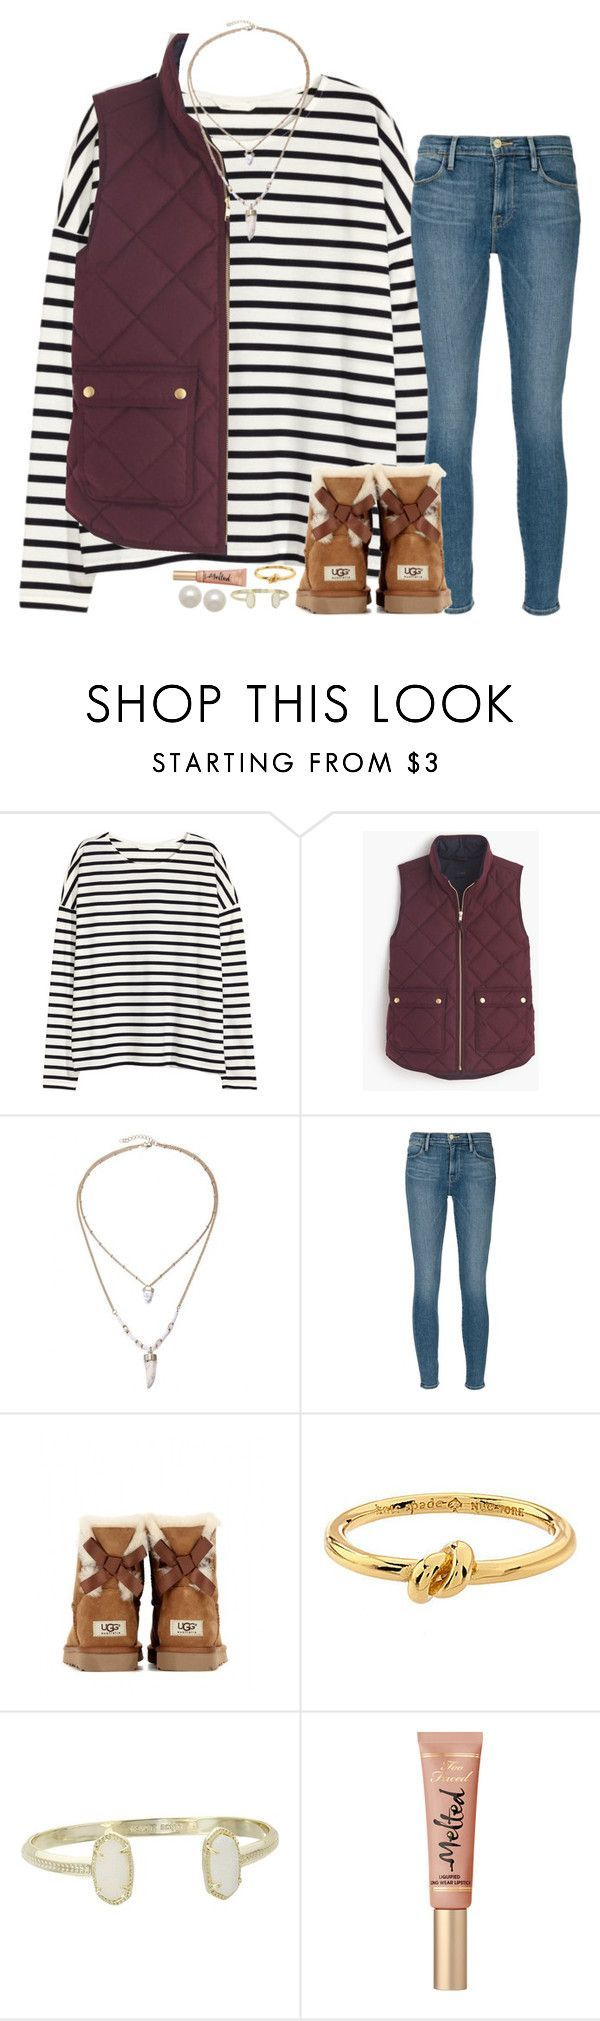 """a sky full of stars and he was looking at her."" by ellaswiftie13 on Polyvore featuring H&M, J.Crew, Frame Denim, UGG Australia, Kate Spade, Kendra Scott and Honora"